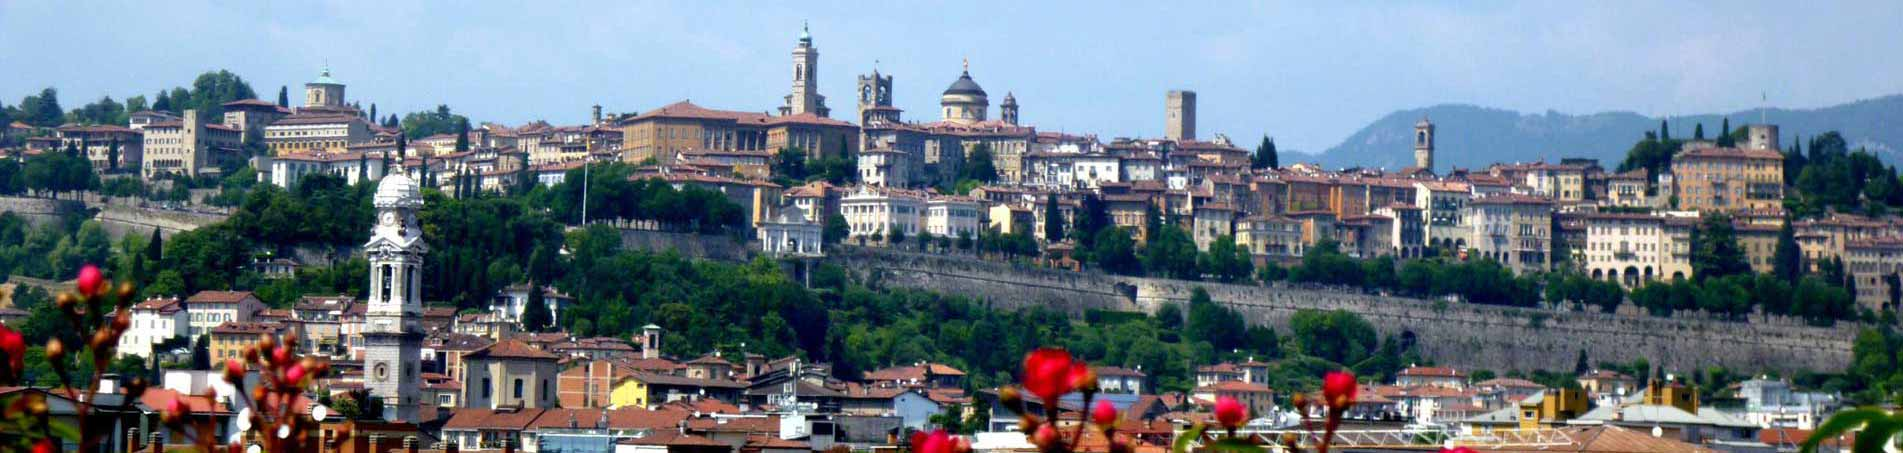 SIGHTSEEING IN BERGAMO AND THE SURROUNDING AREA